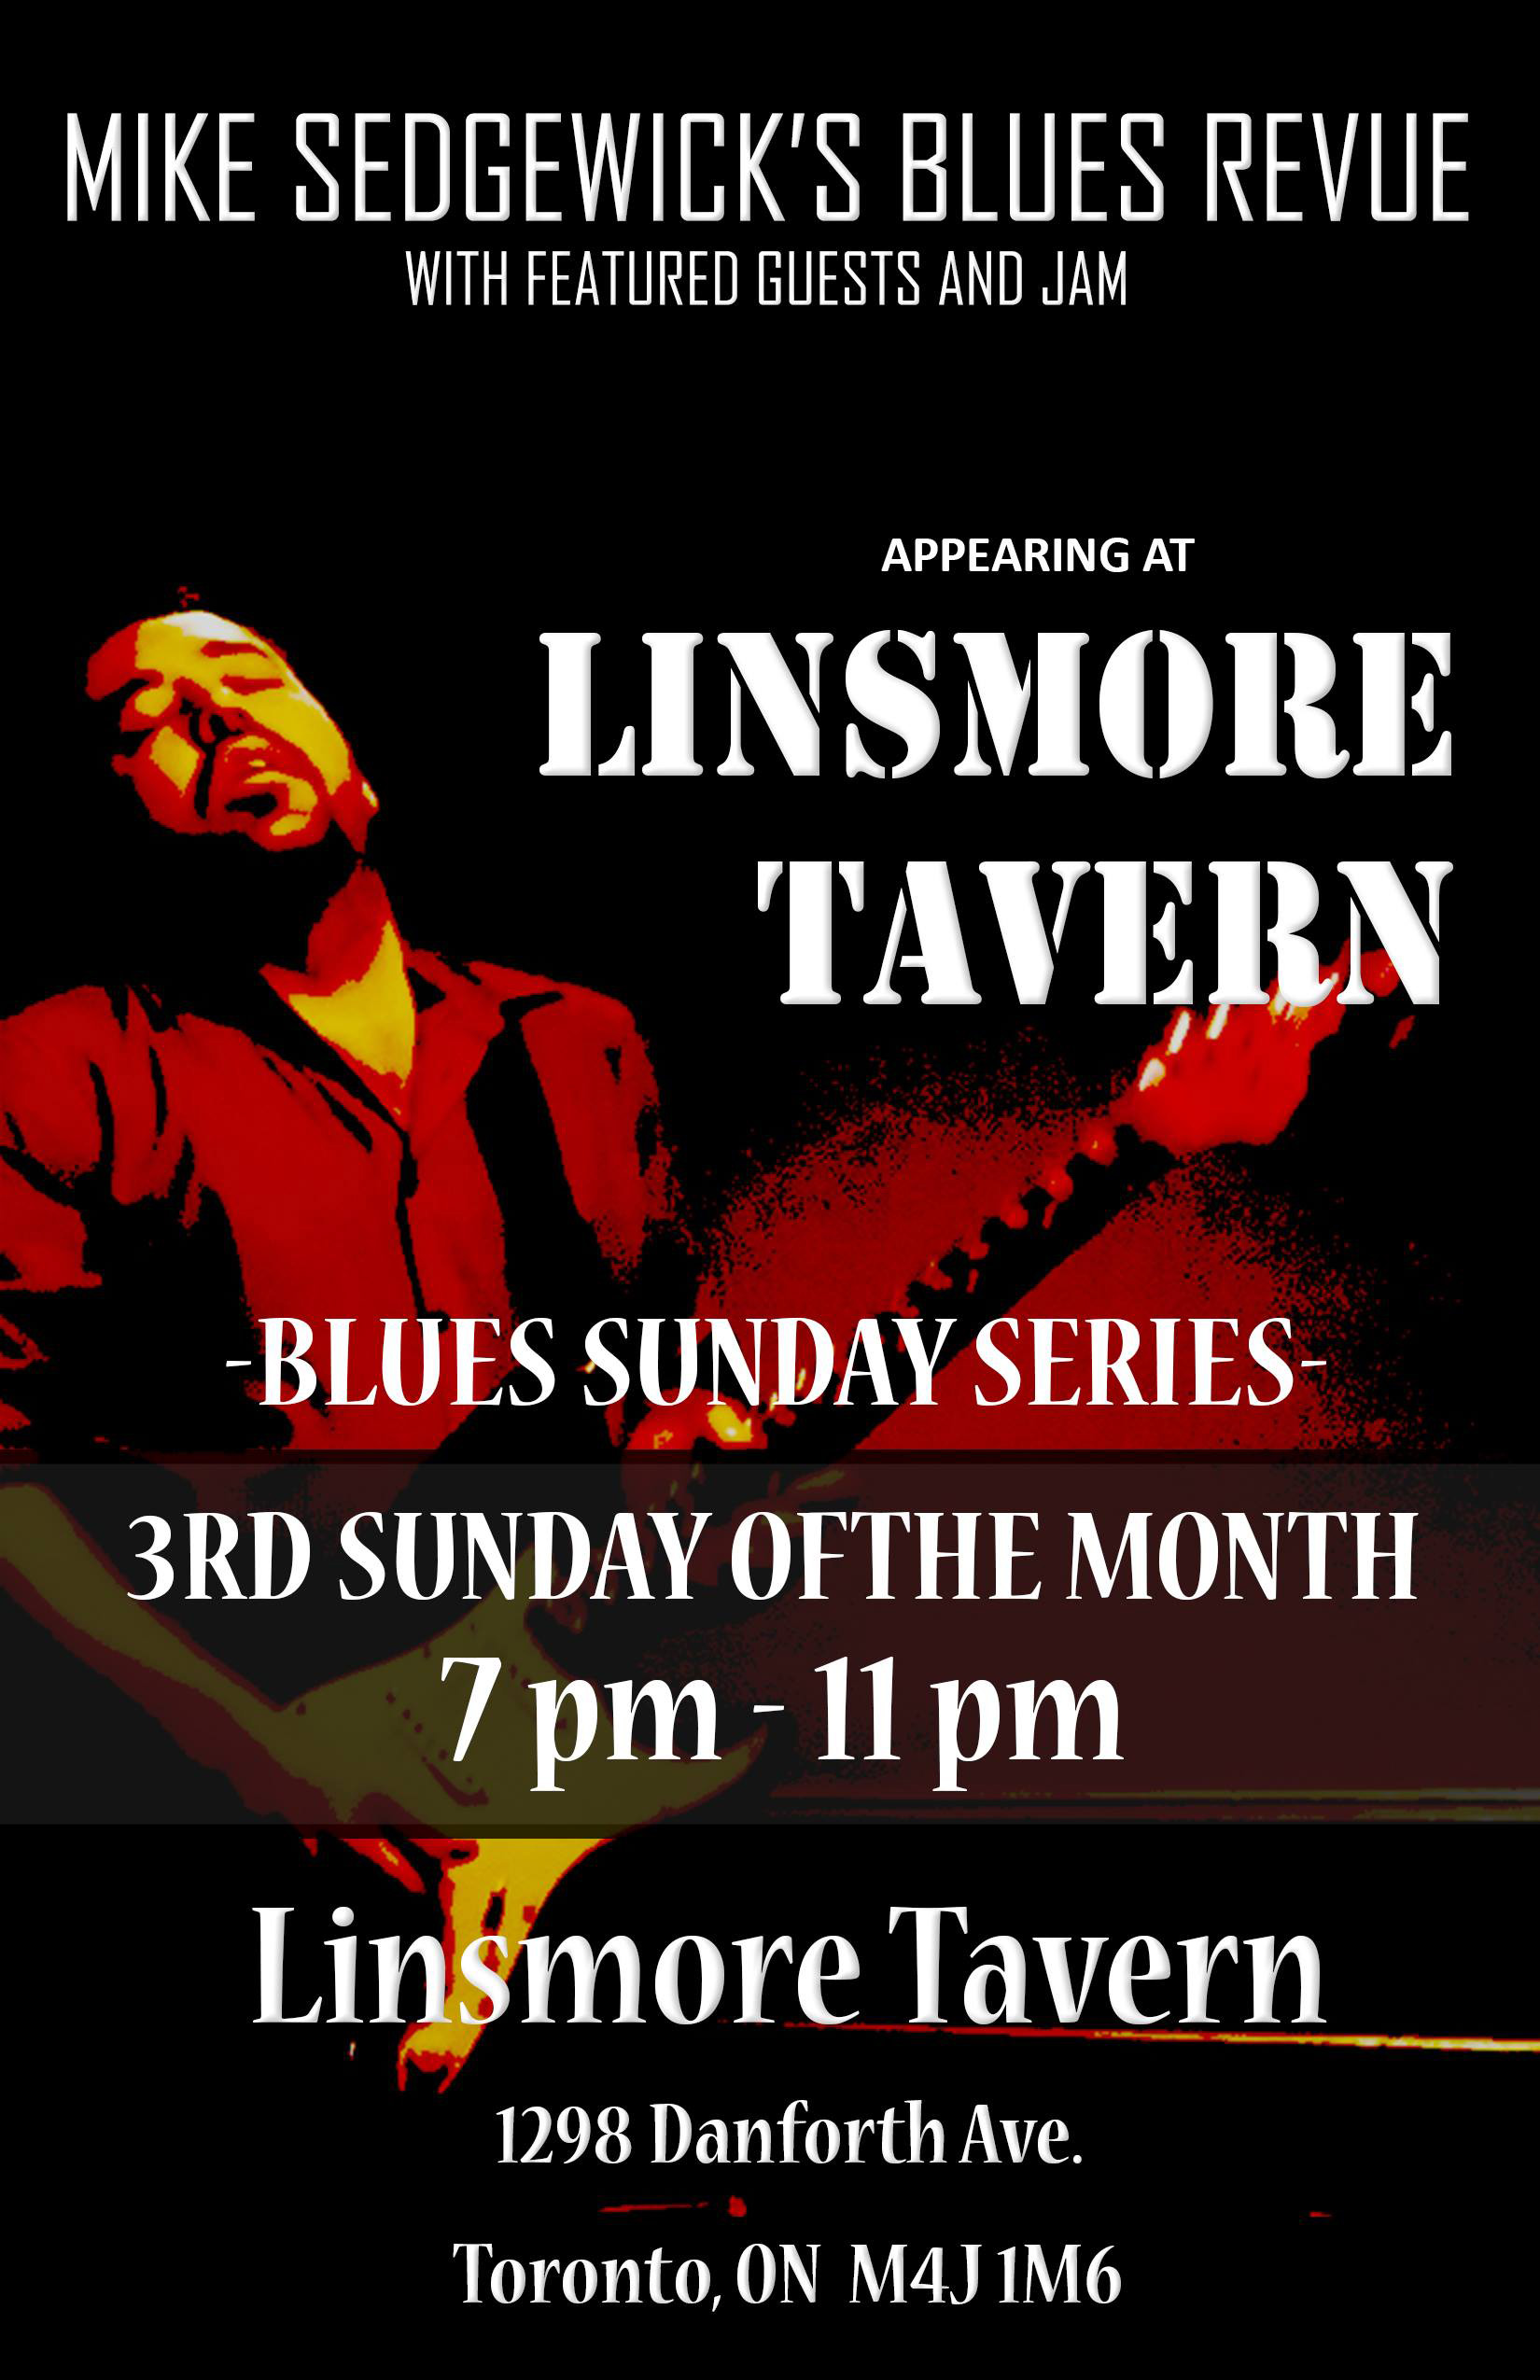 Mike Sedgewick's Blues Revue & Open Jam in March at the Linsmore Tavern!